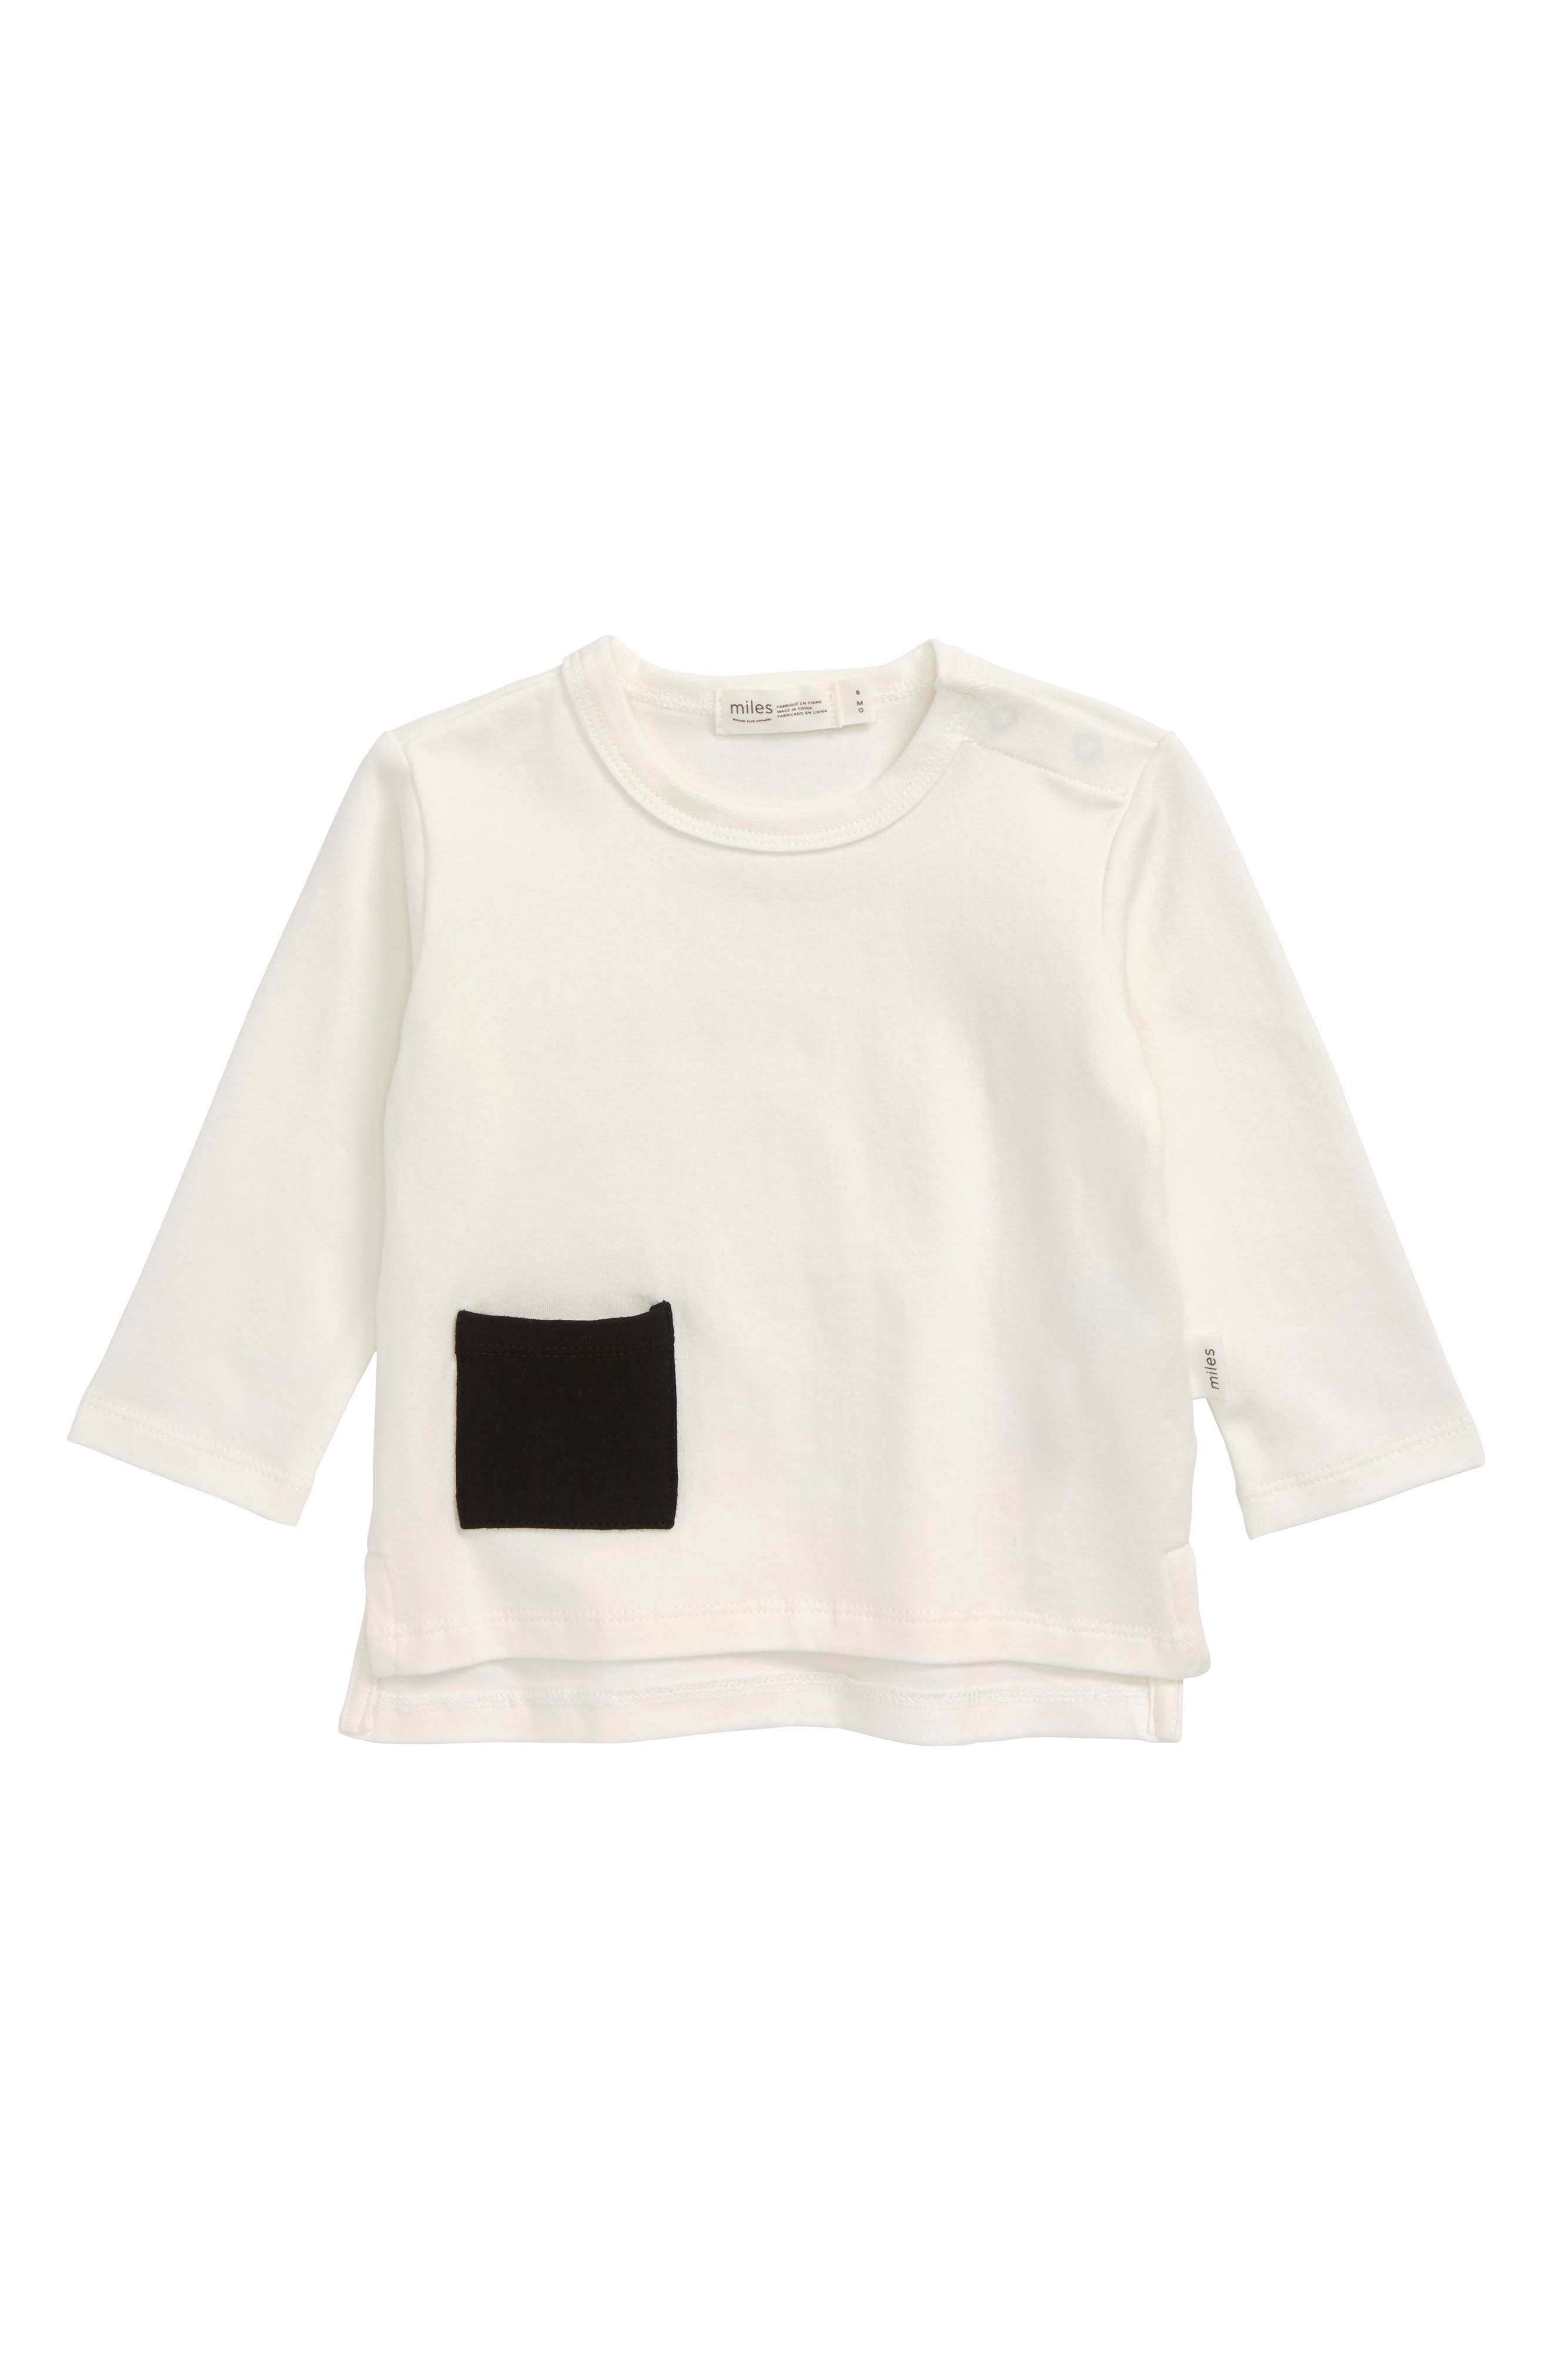 This classic crewneck featuring a contrast patch pocket is cut from soft, stretchy organic cotton and is an essential building block to any great wardrobe. Style Name: Miles Baby Organic Cotton Pocket T-Shirt (Baby). Style Number: 5886430 1. Available in stores.